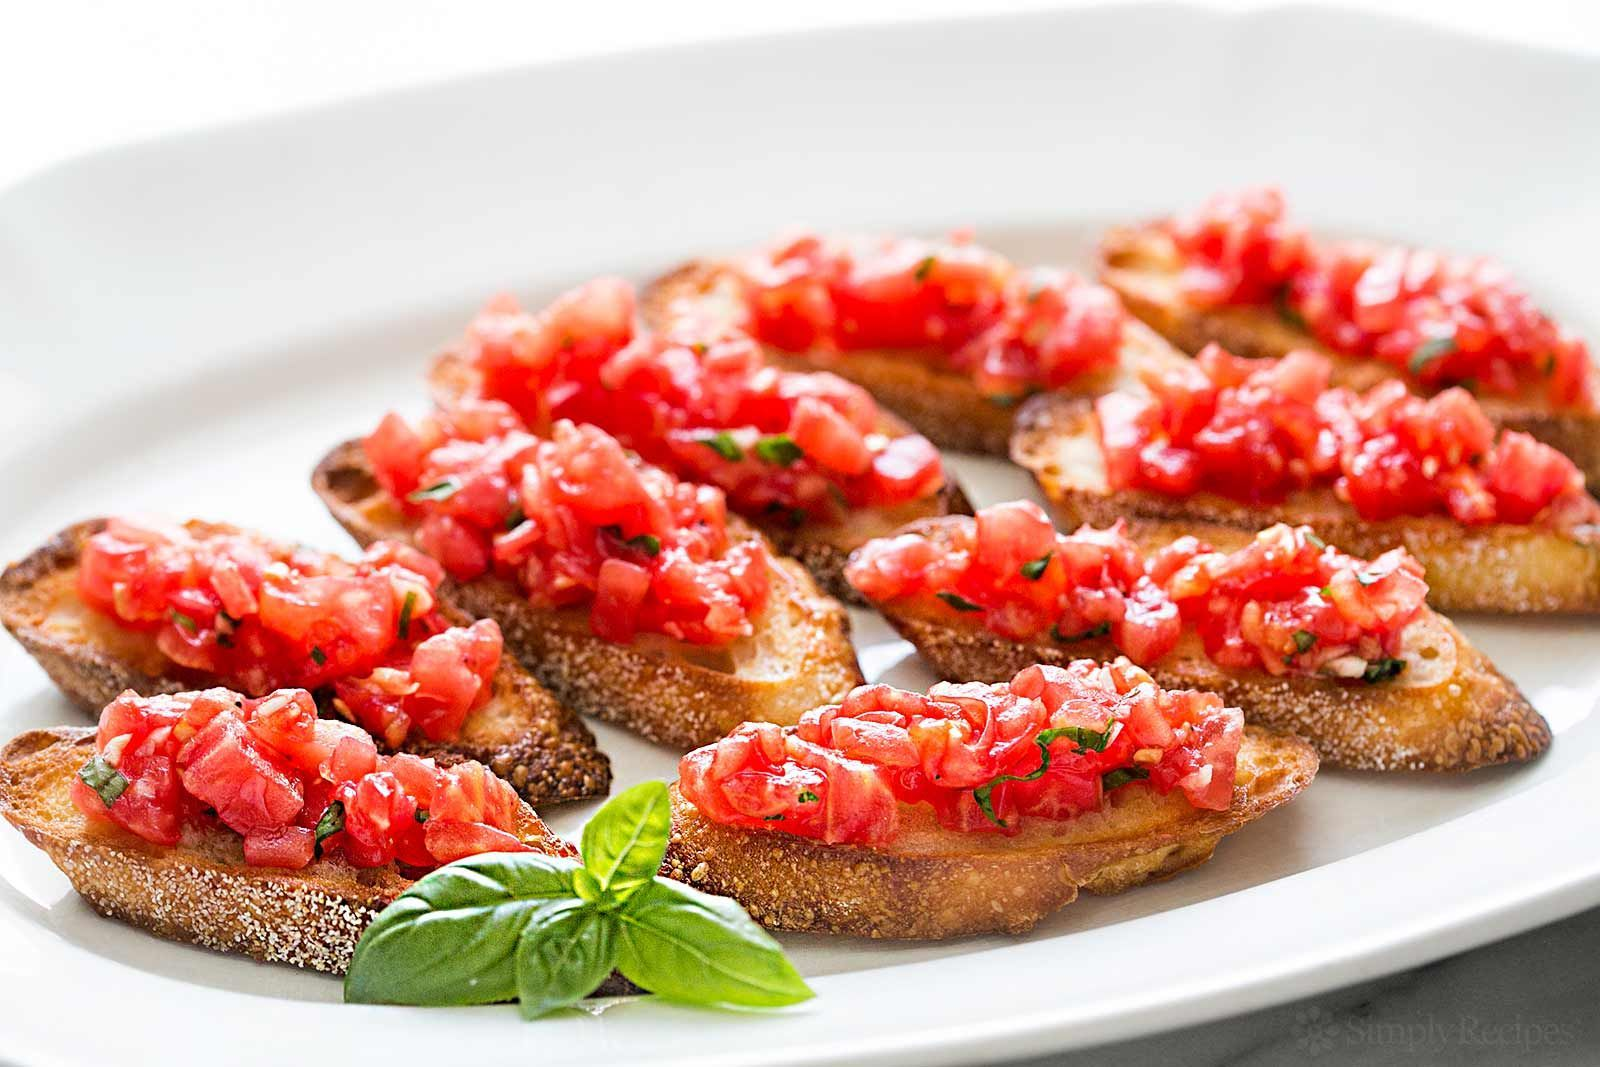 Bruschetta with tomato and basil! Chopped fresh tomatoes with garlic, basil, olive oil, and vinegar, served on toasted slices of French or Italian bread. On with tomato and basil! Chopped fresh tomatoes with garlic, basil, olive oil, and vinegar, served on toasted slices of French or Italian bread. On